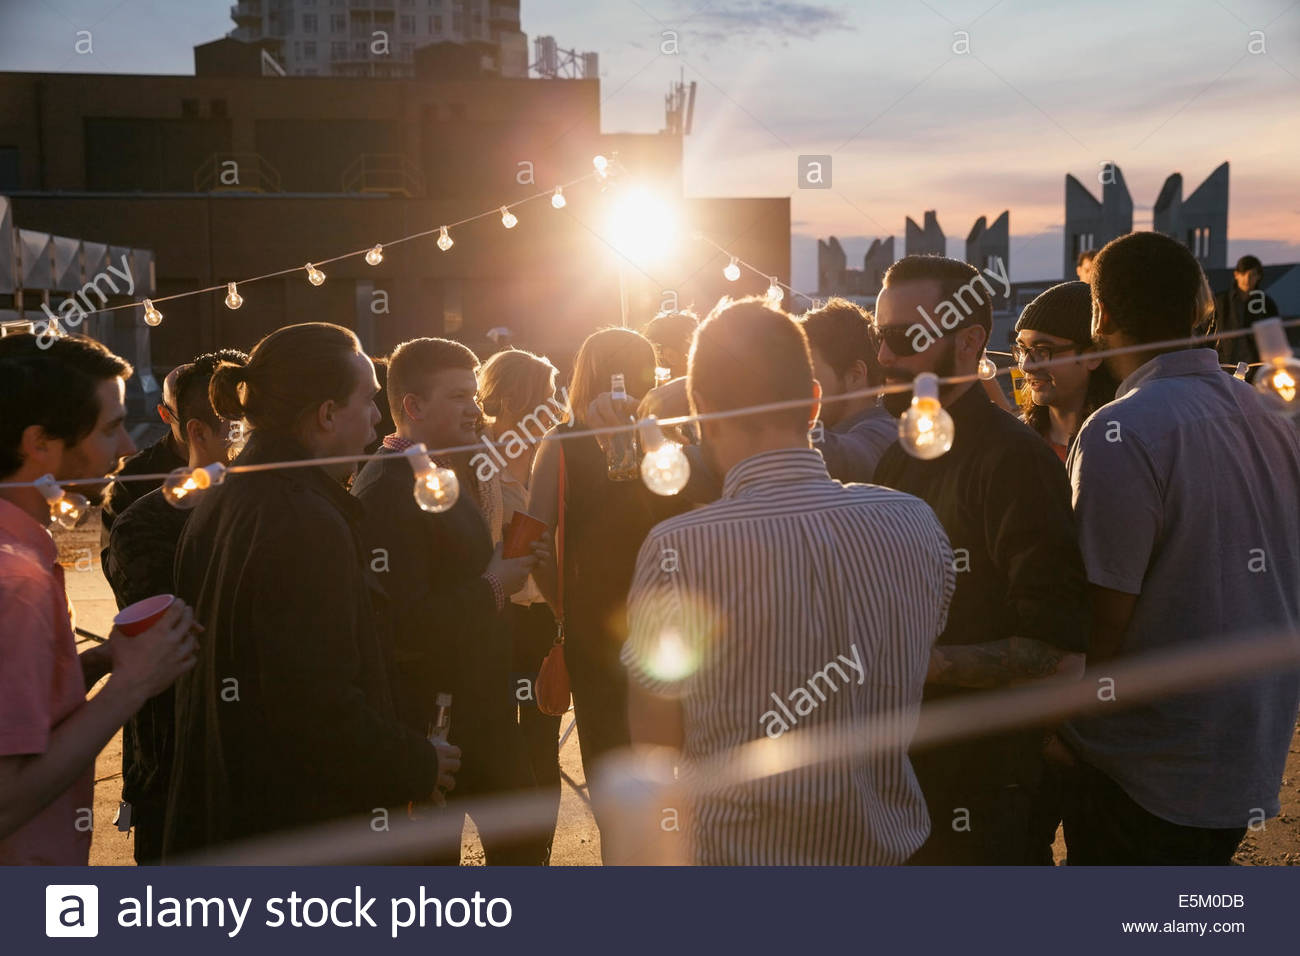 String lights sur crowd at rooftop party Photo Stock